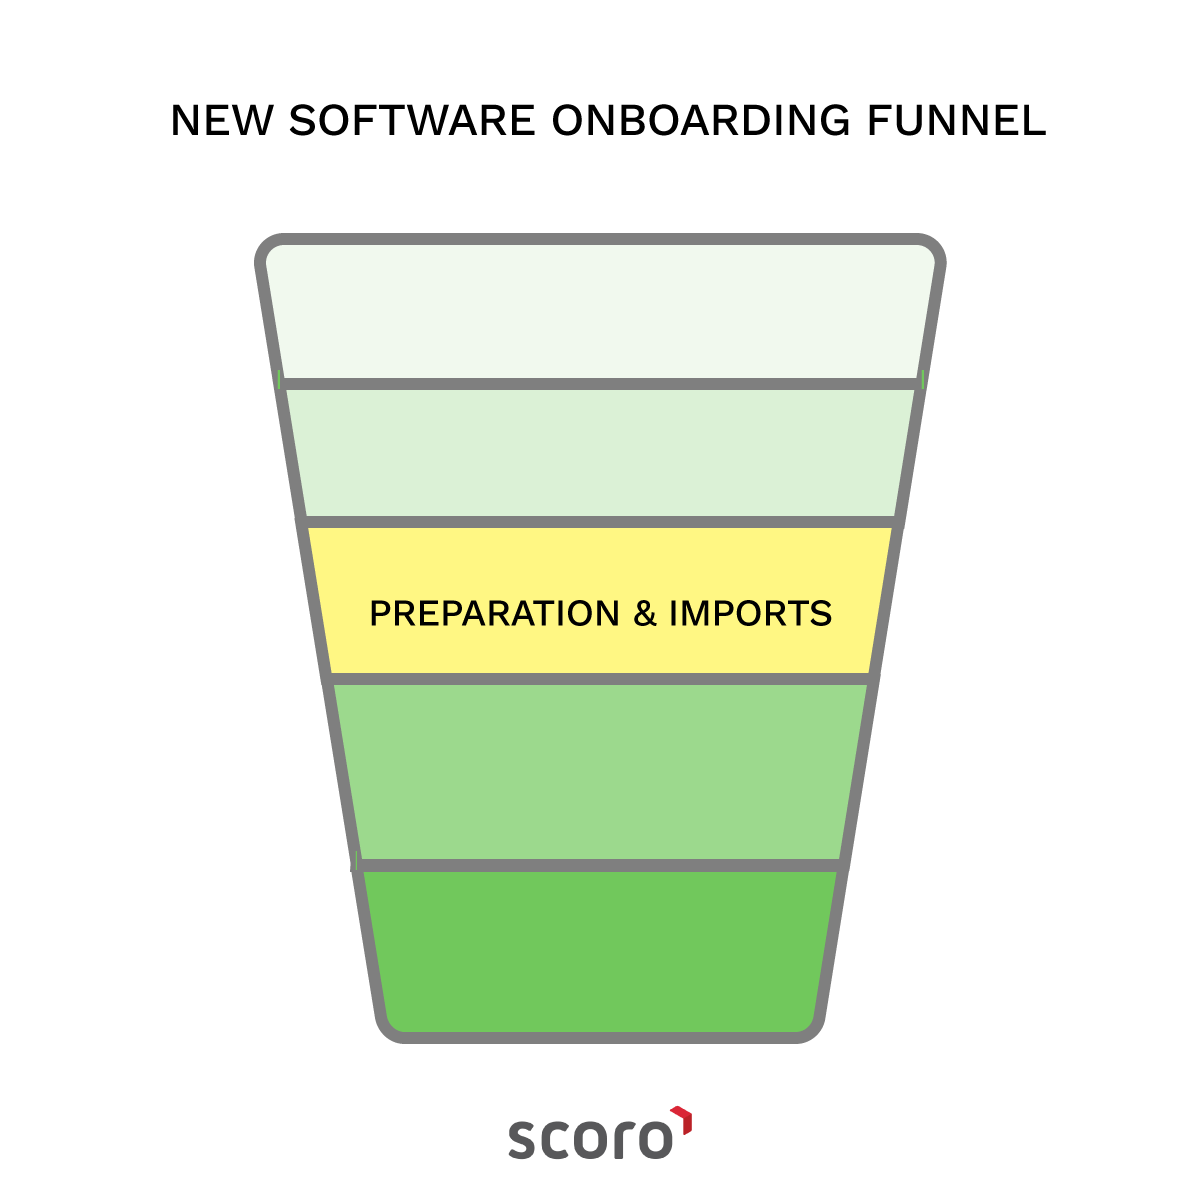 new software onboarding funnel imports